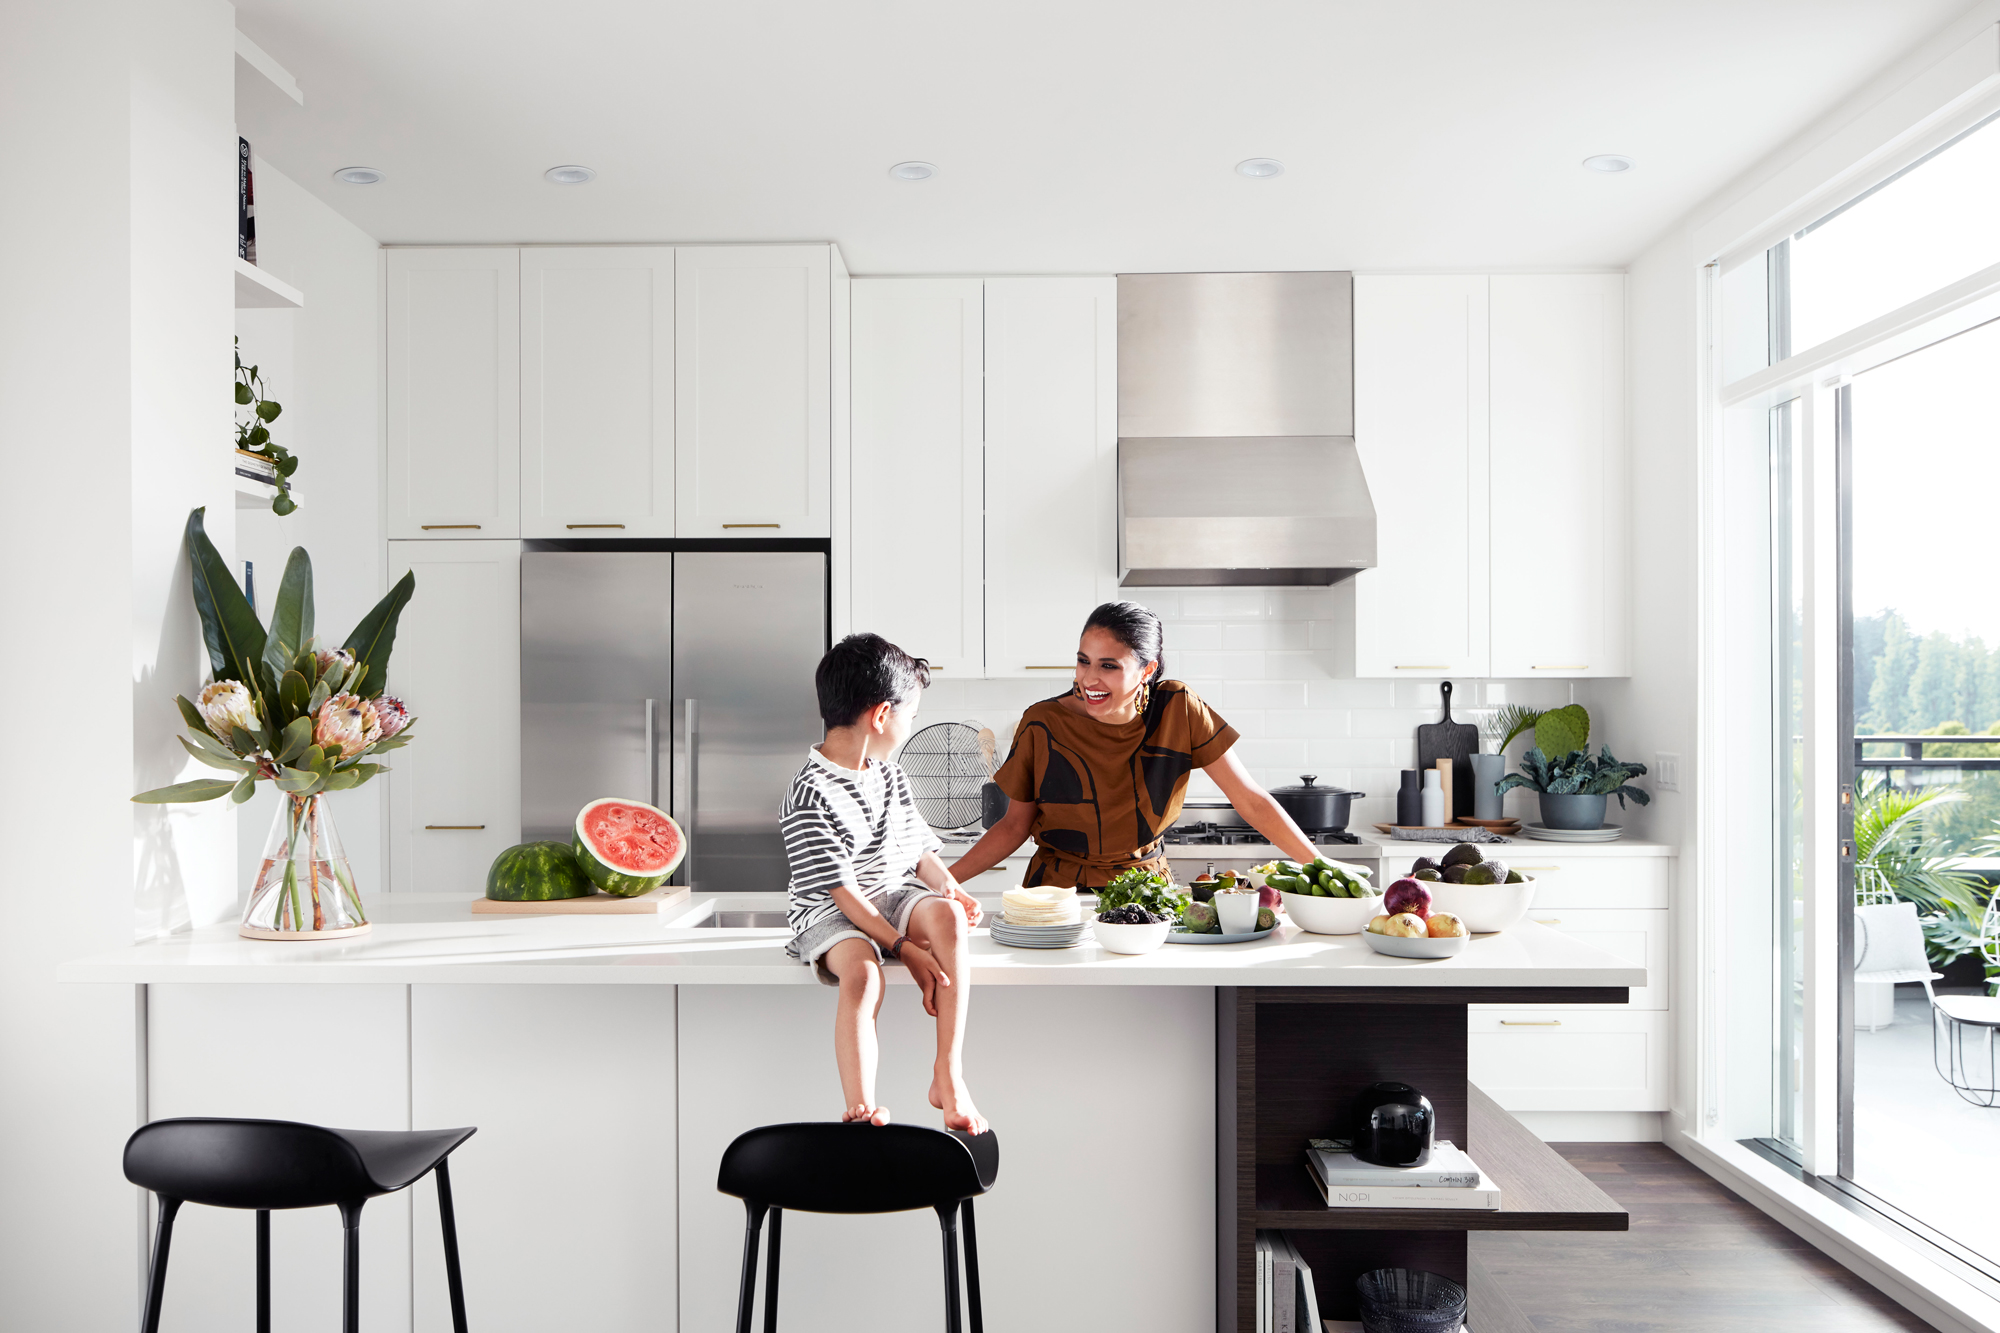 girl and young boy in kitchen talking